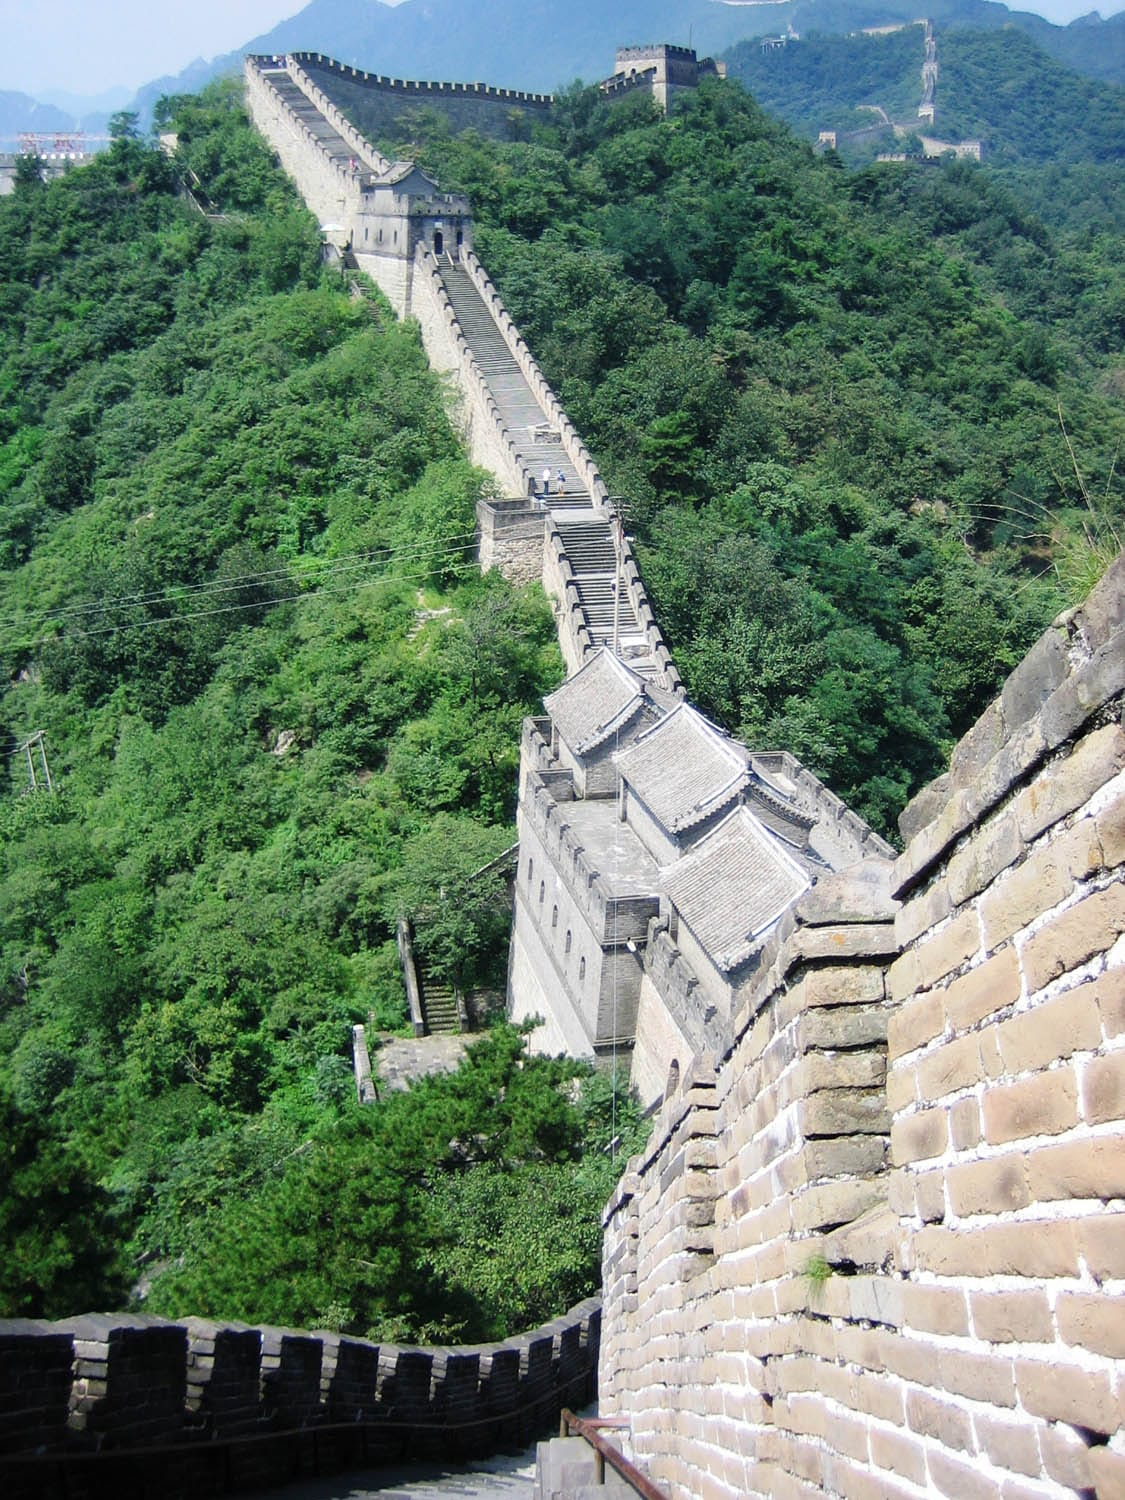 Great Wall at Mutianyu Looking West